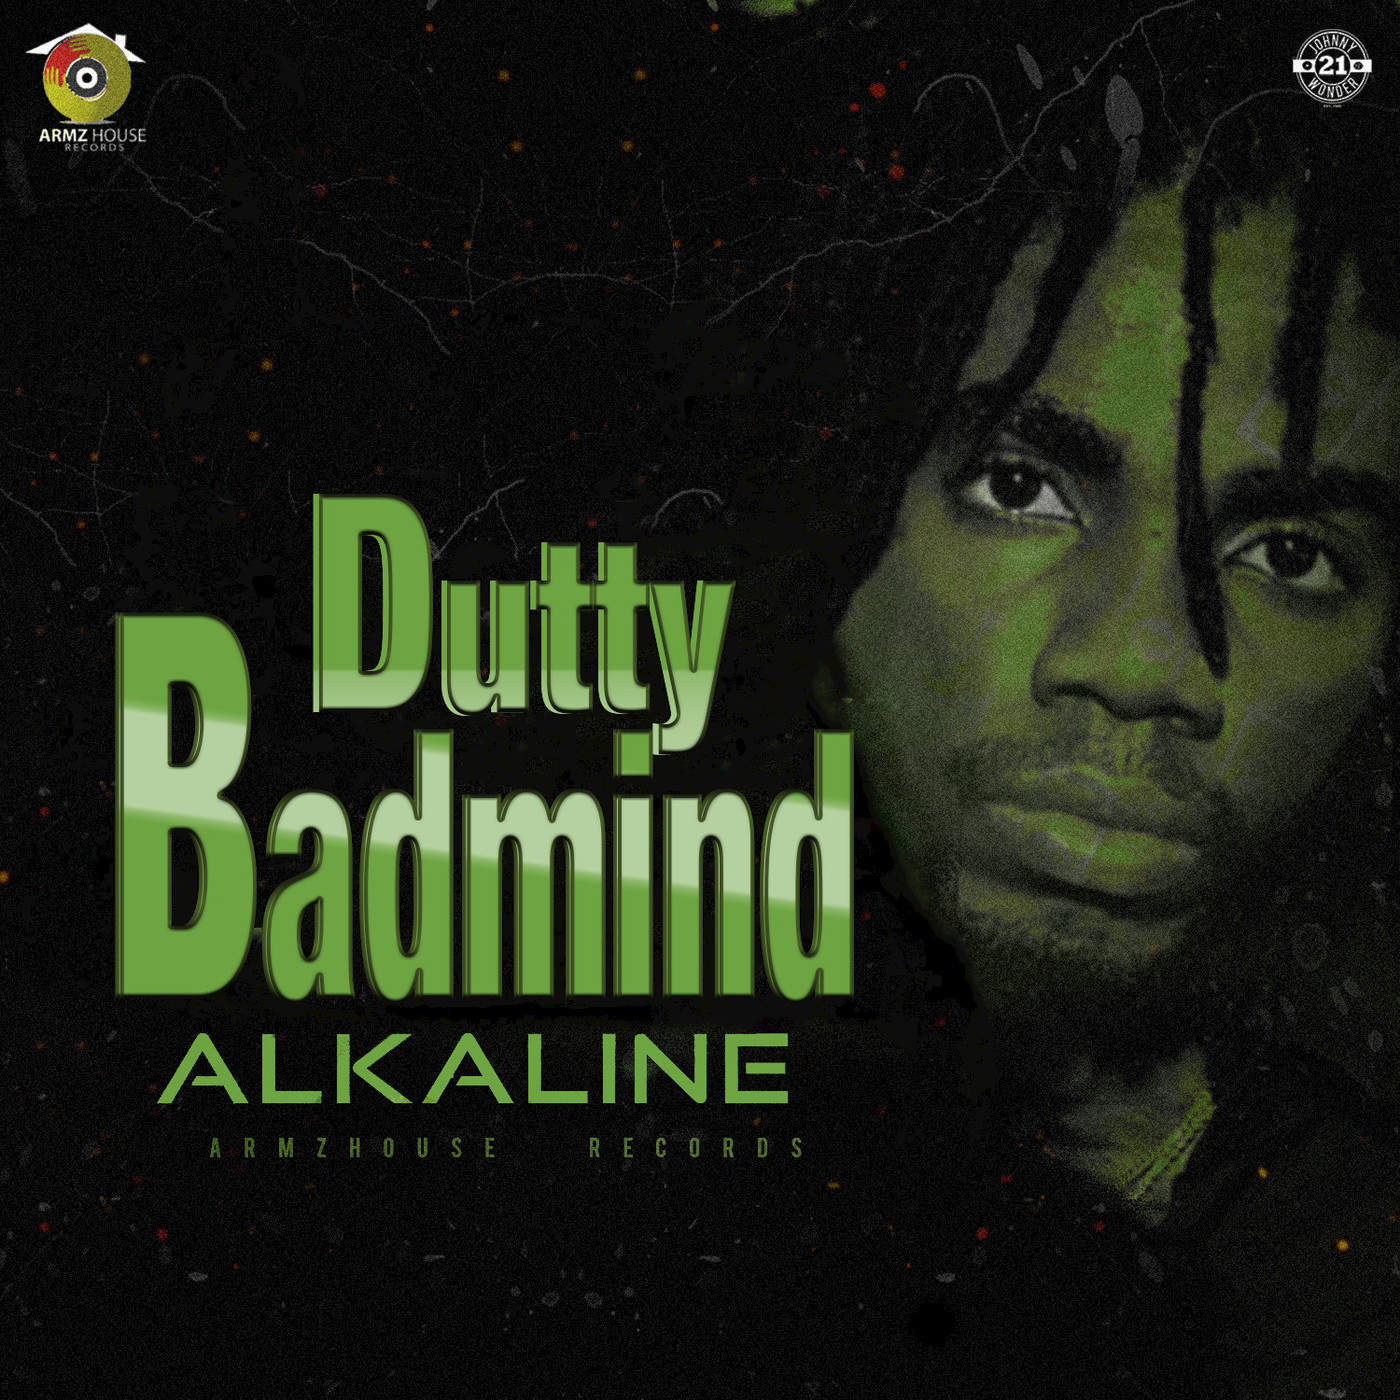 Alkaline -  Dutty Badmind.mp3